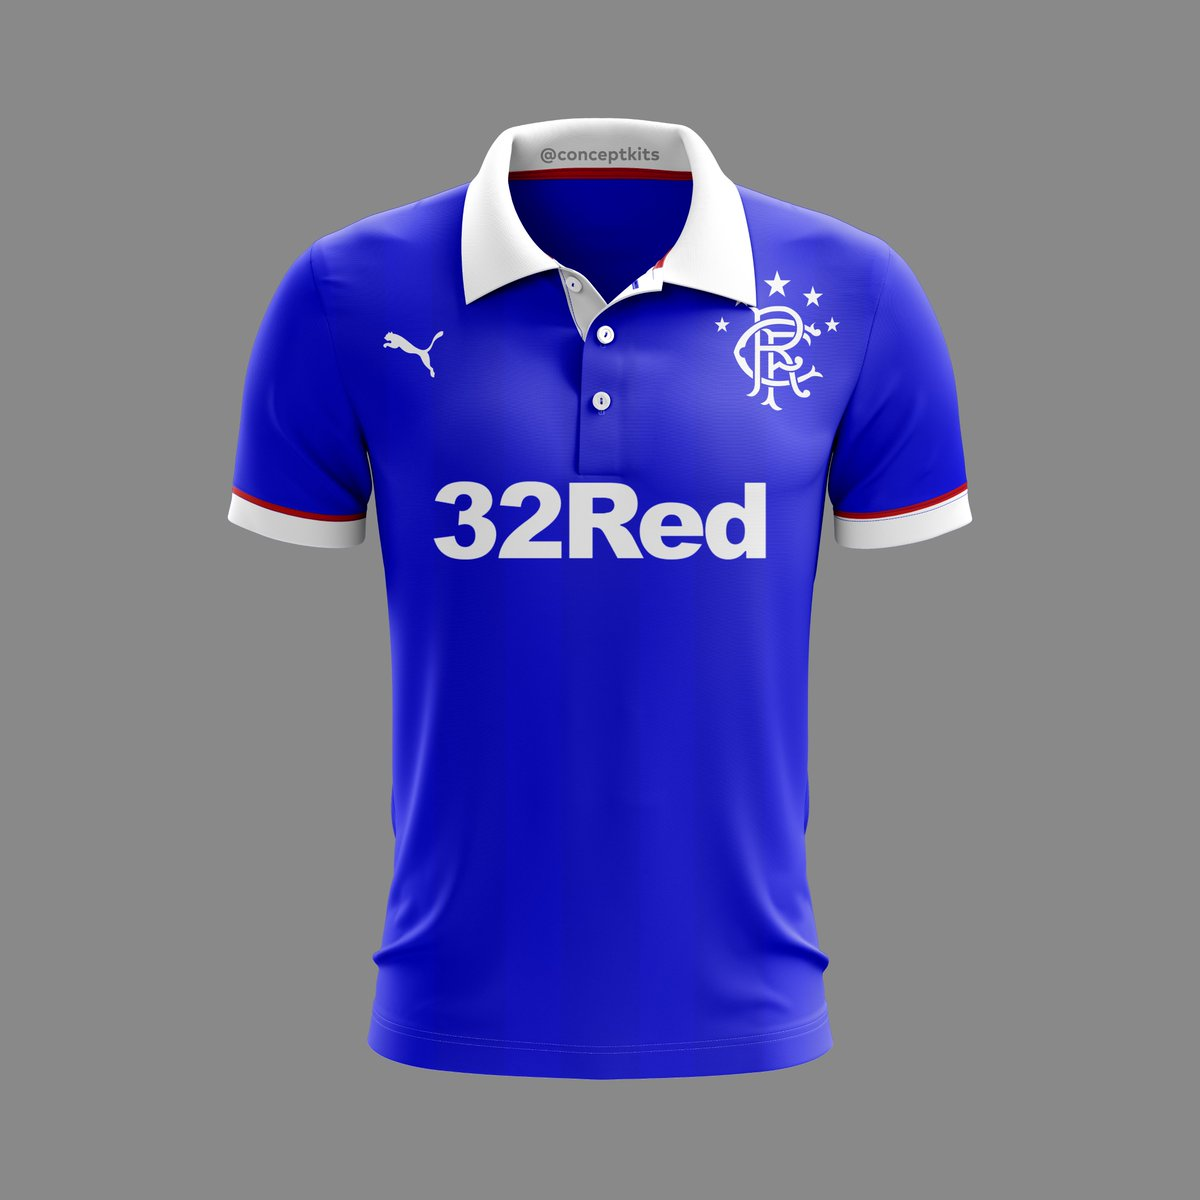 490621024 Rangers Football Club home and away kit concepts 2017 18 (Requested on  Instagram)  rangers  rangersfc  gers  Glasgowpic.twitter.com kMcScwmMIO